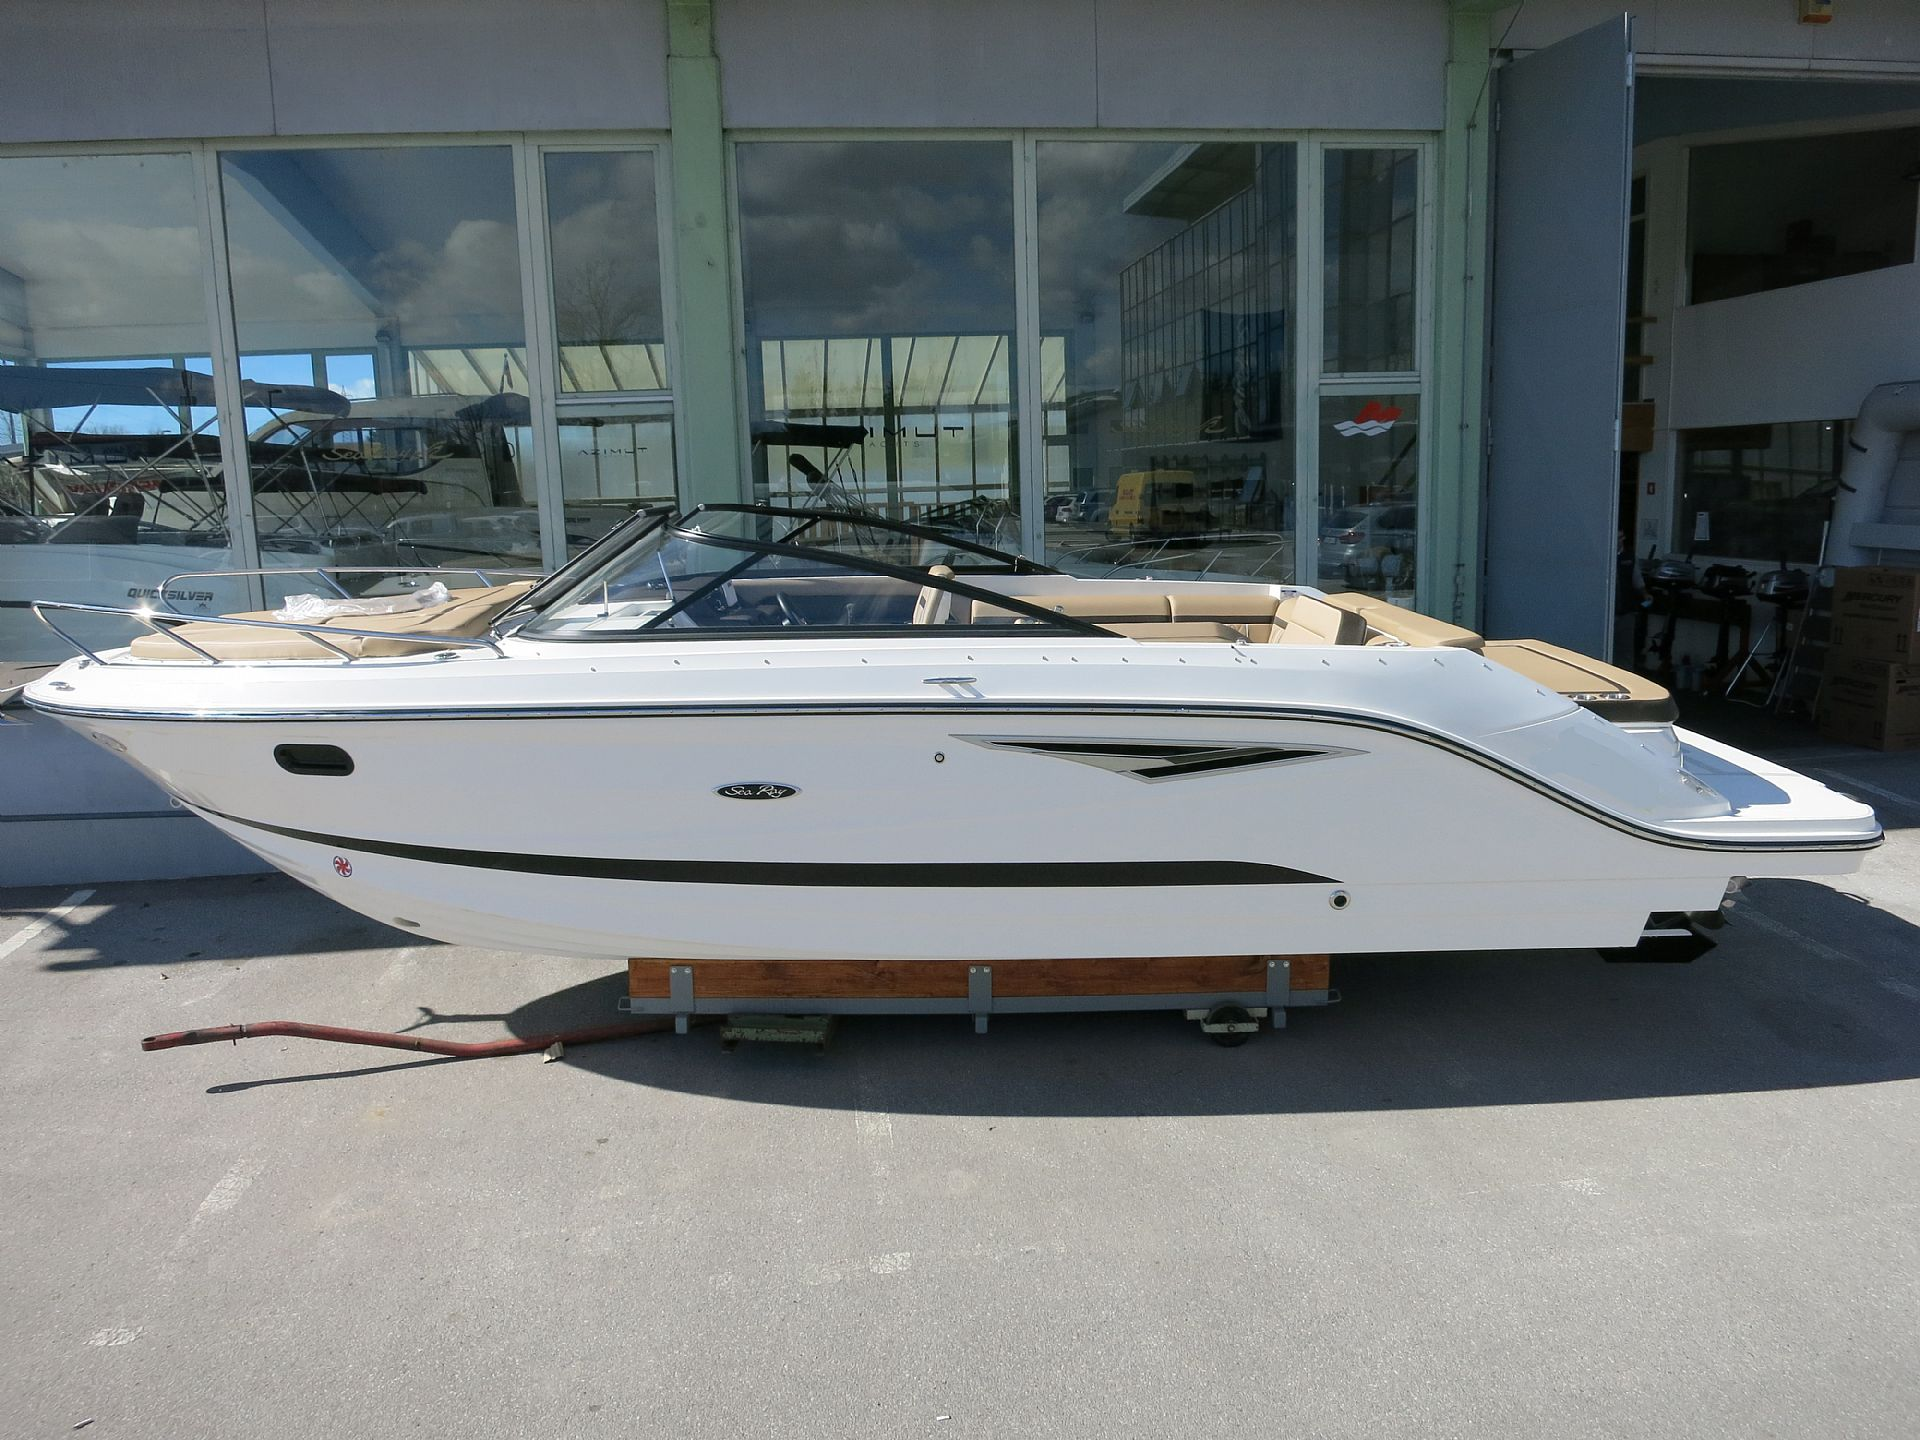 Sea Ray 250 SunSport2019 for sale: 76280.-EUR